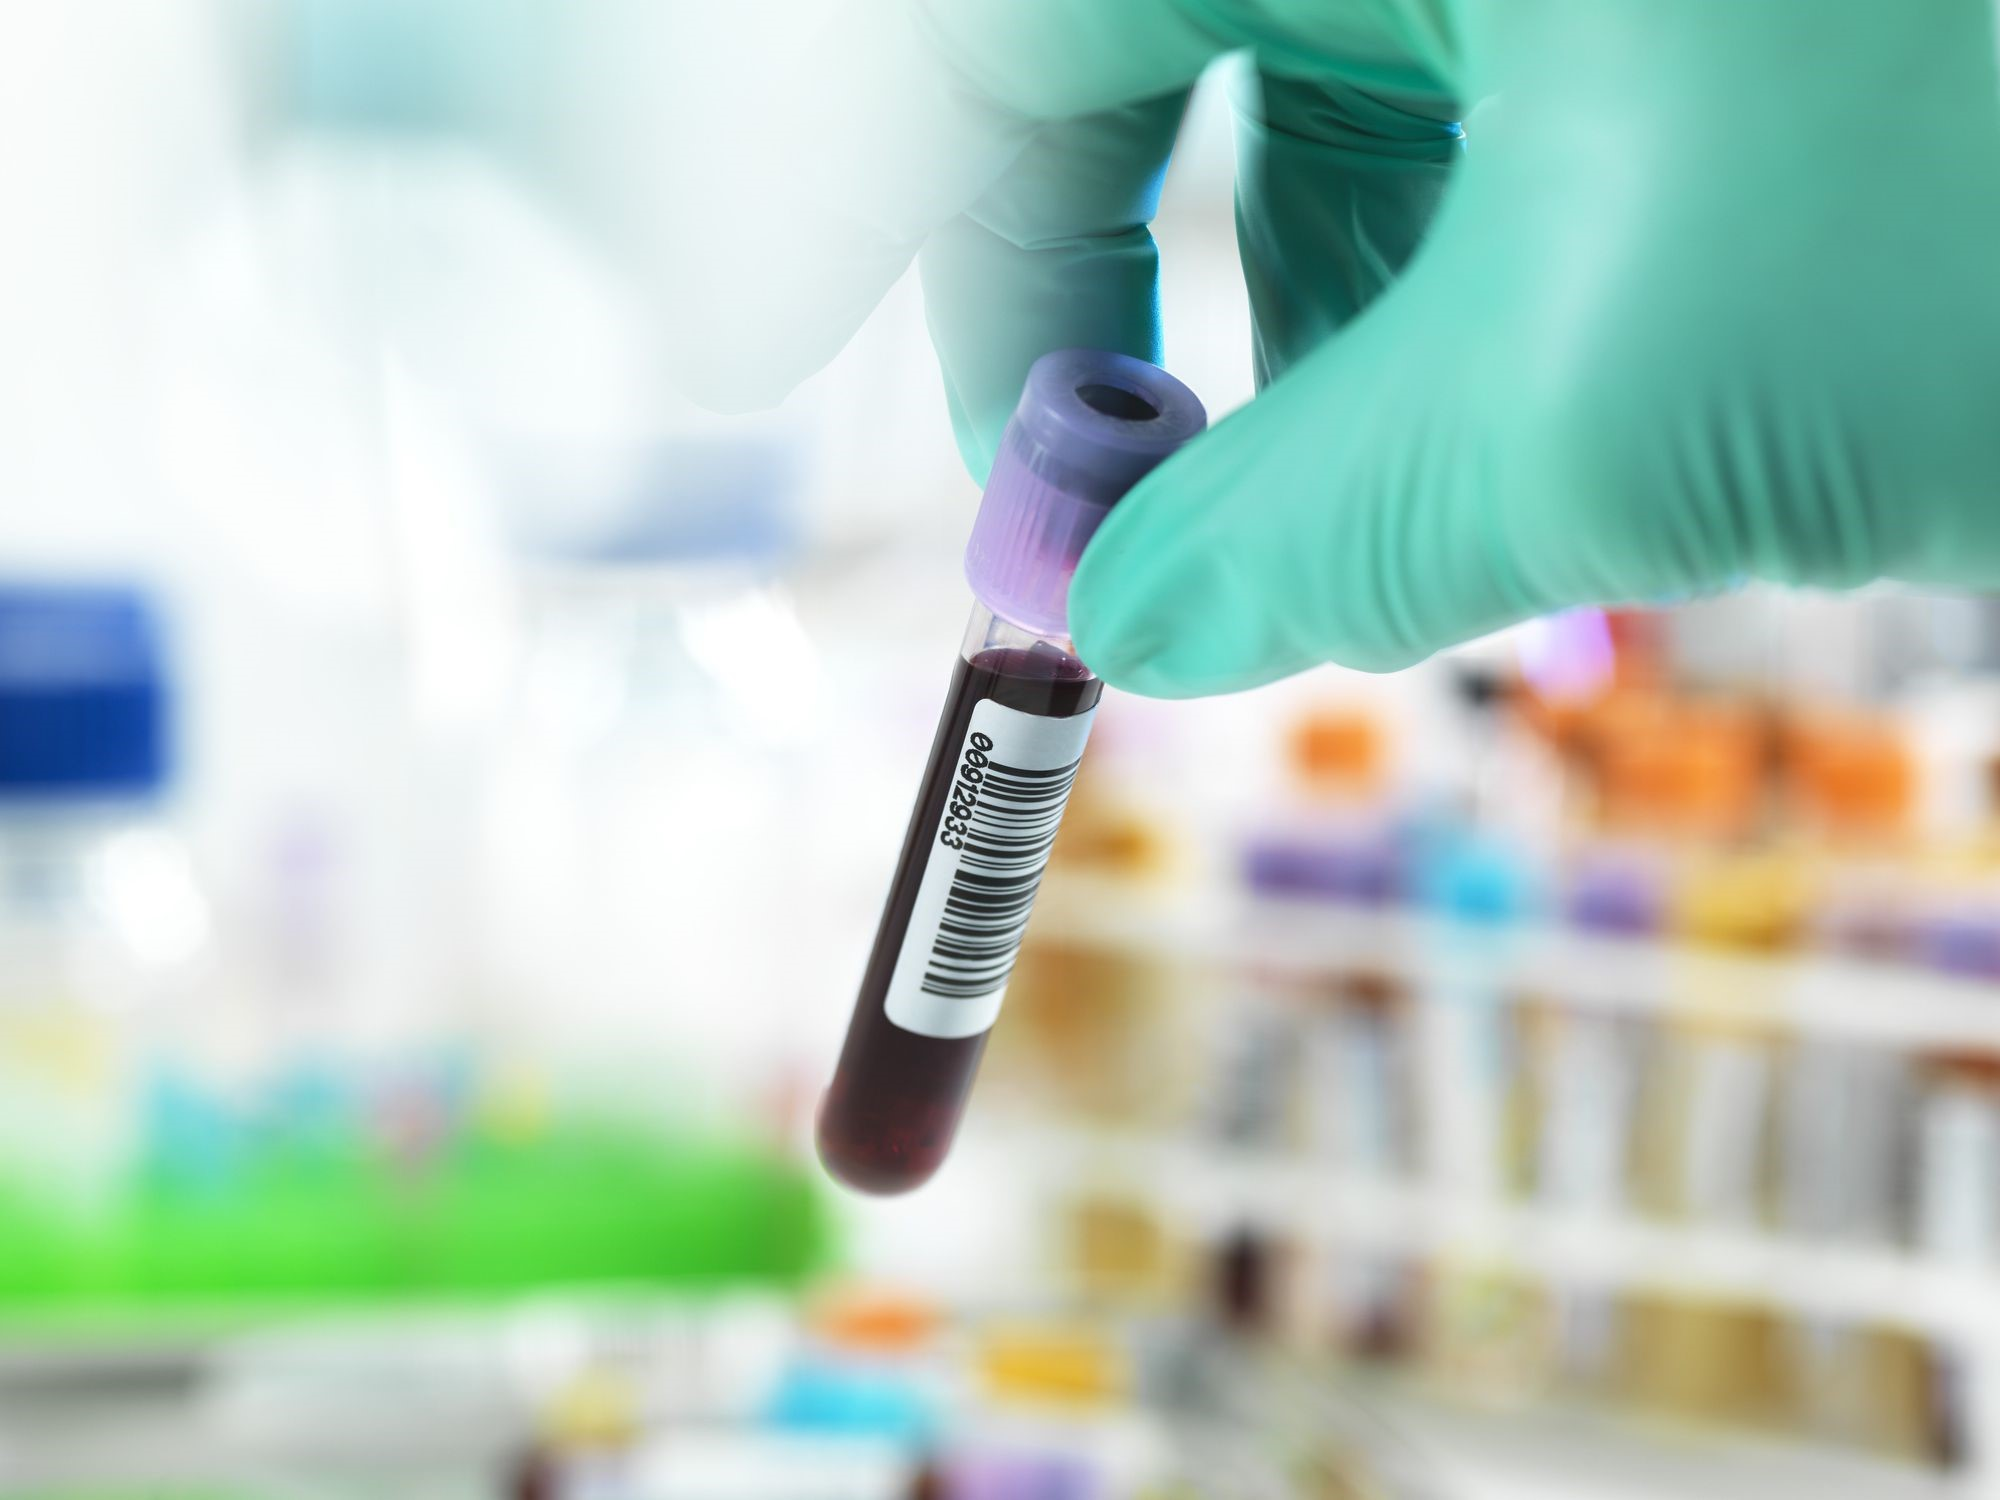 Tips for Selecting the Right Needle for Blood Collection